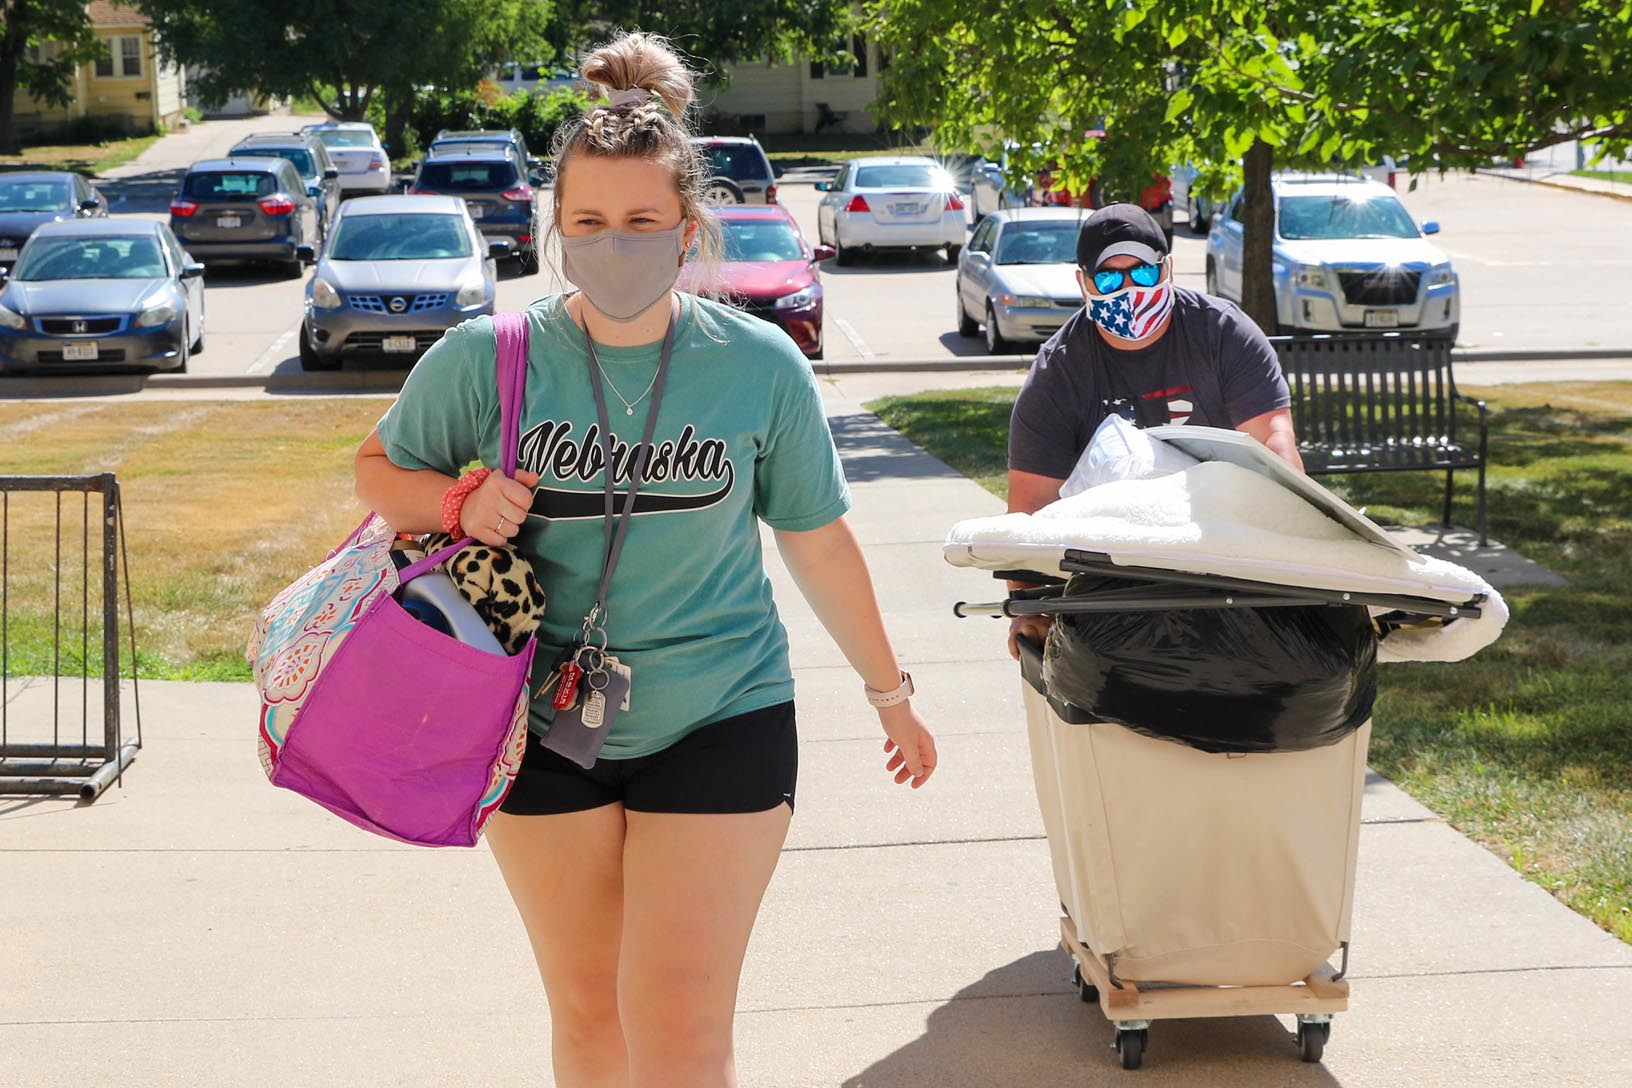 UNK freshman Morgan Bice of Hickman and her father Chad move items into the Centennial Towers East residence hall on Monday morning. Bice will begin classes next week in UNK's pre-nursing program. (Photos by Todd Gottula, UNK Communications)